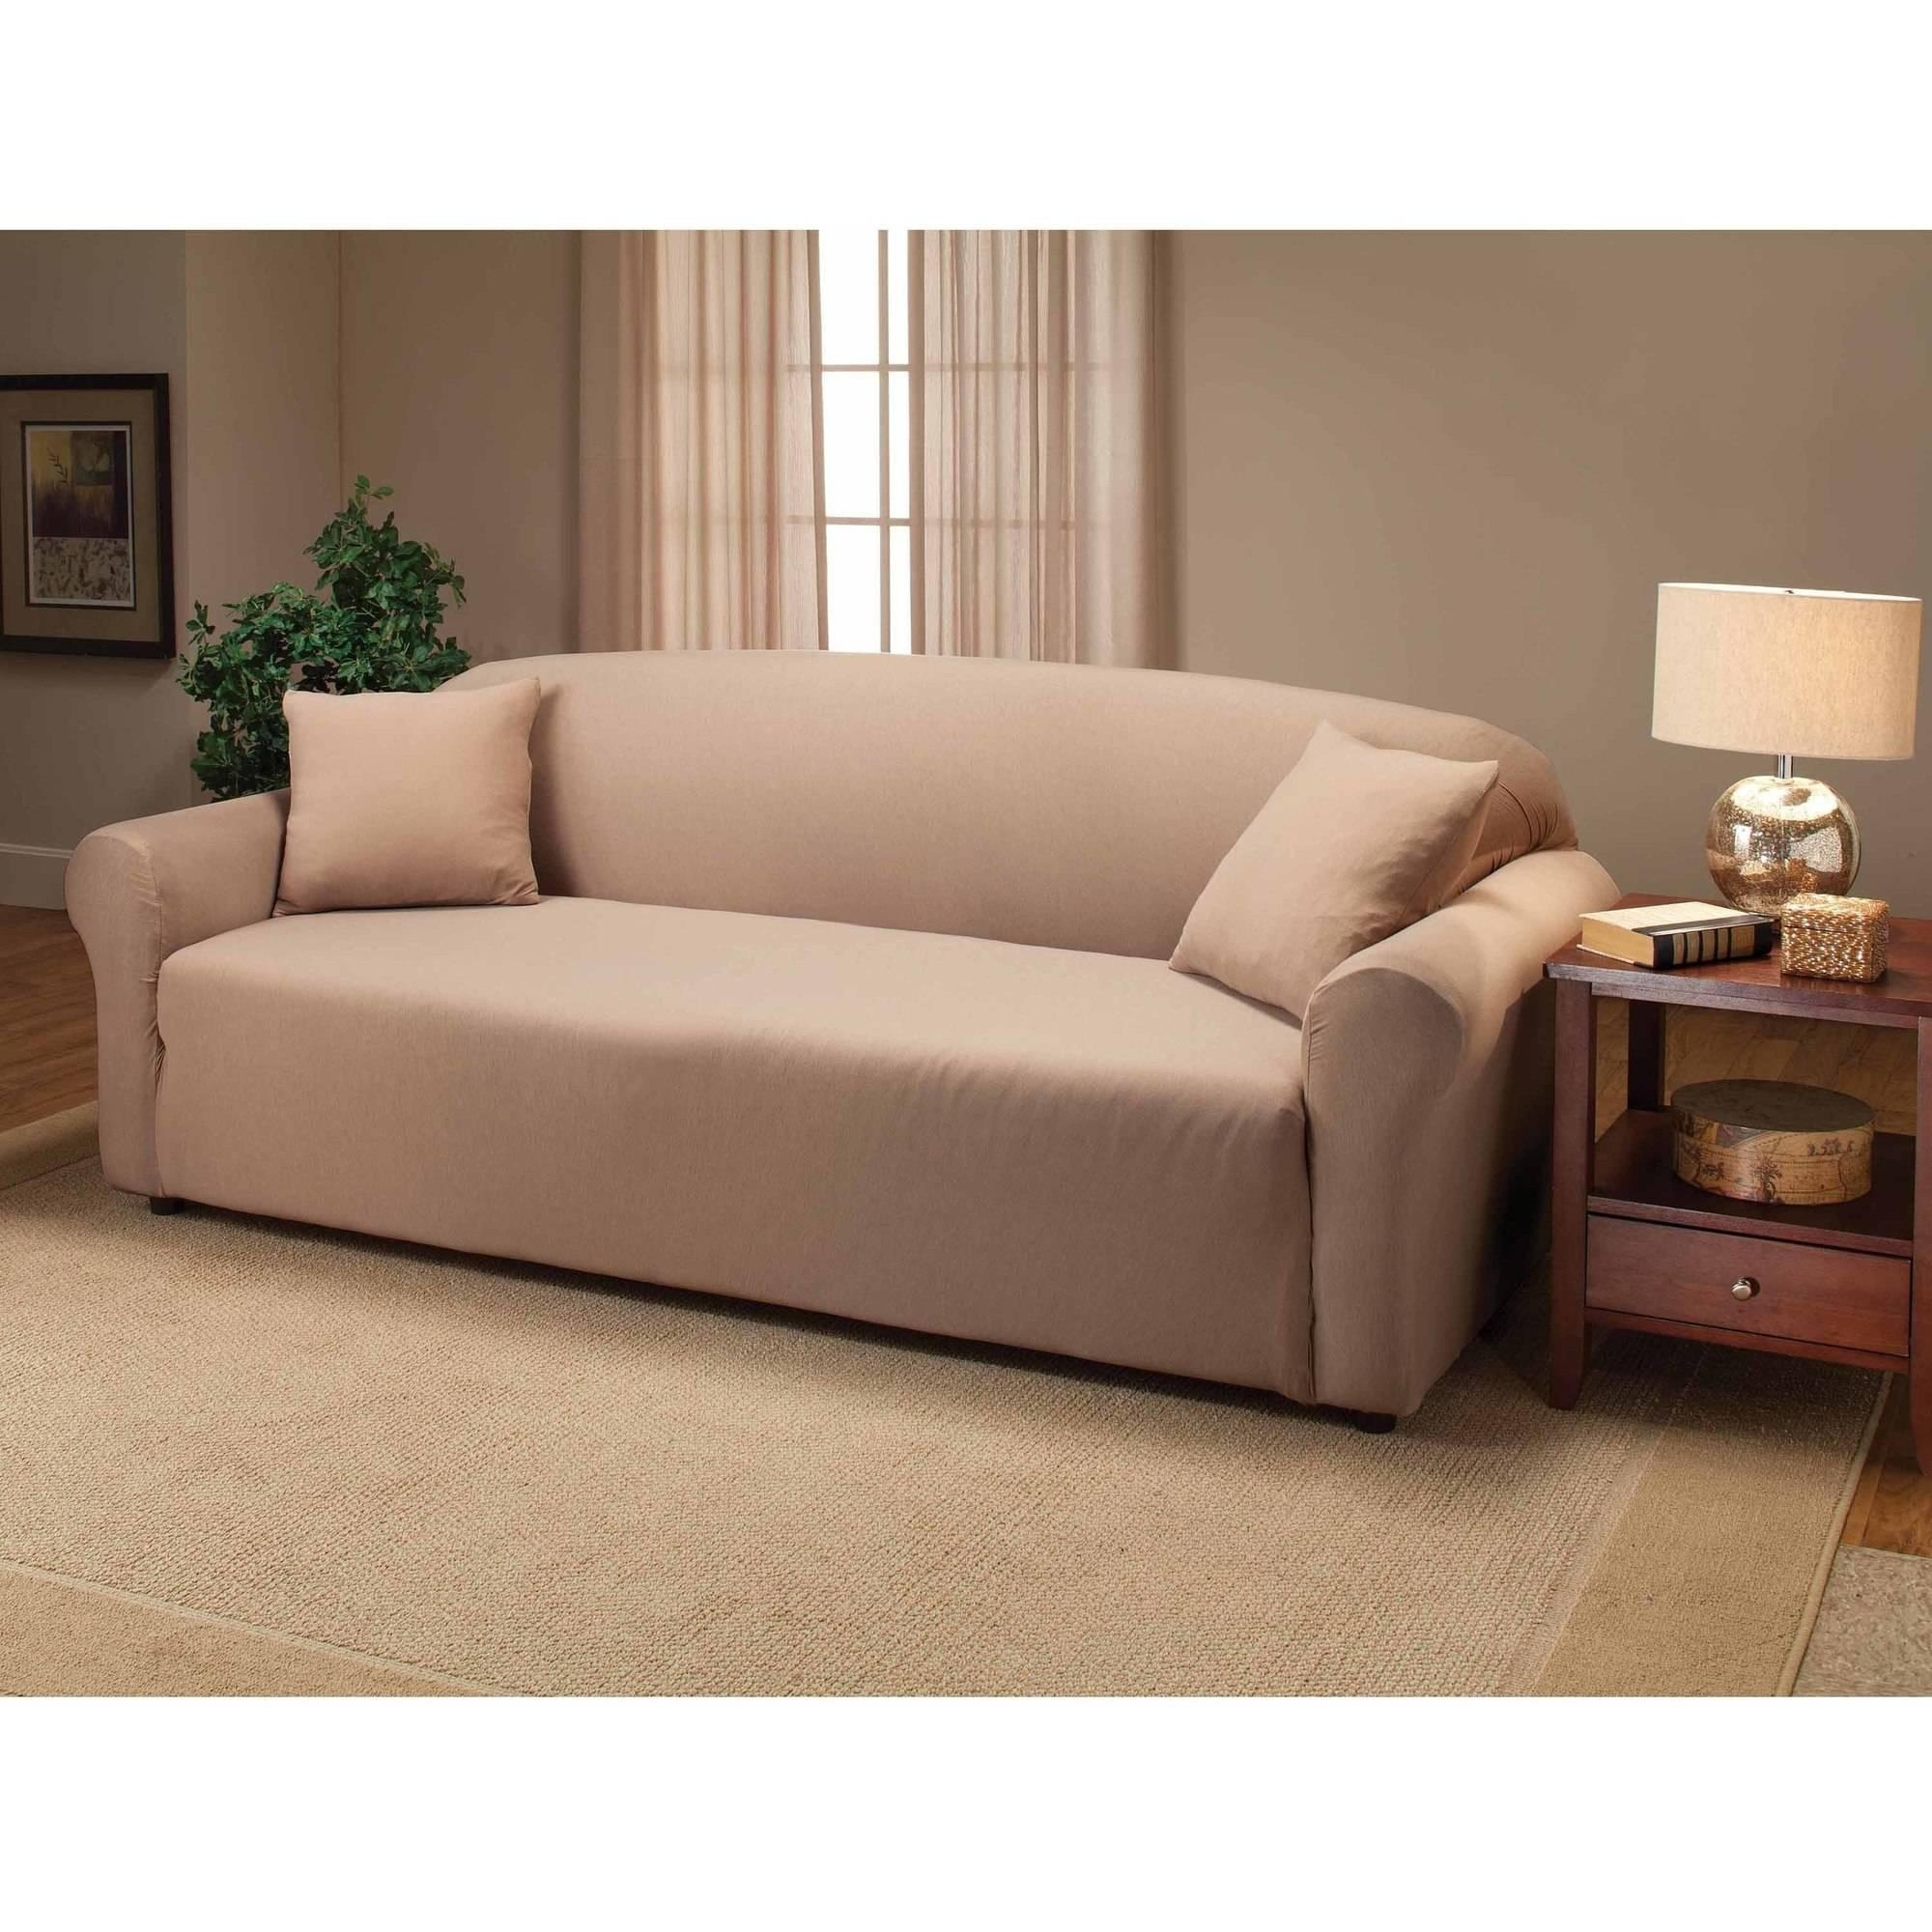 2 Piece Sofa Slipcovers Within 2 Piece Sofa Covers (Image 2 of 27)